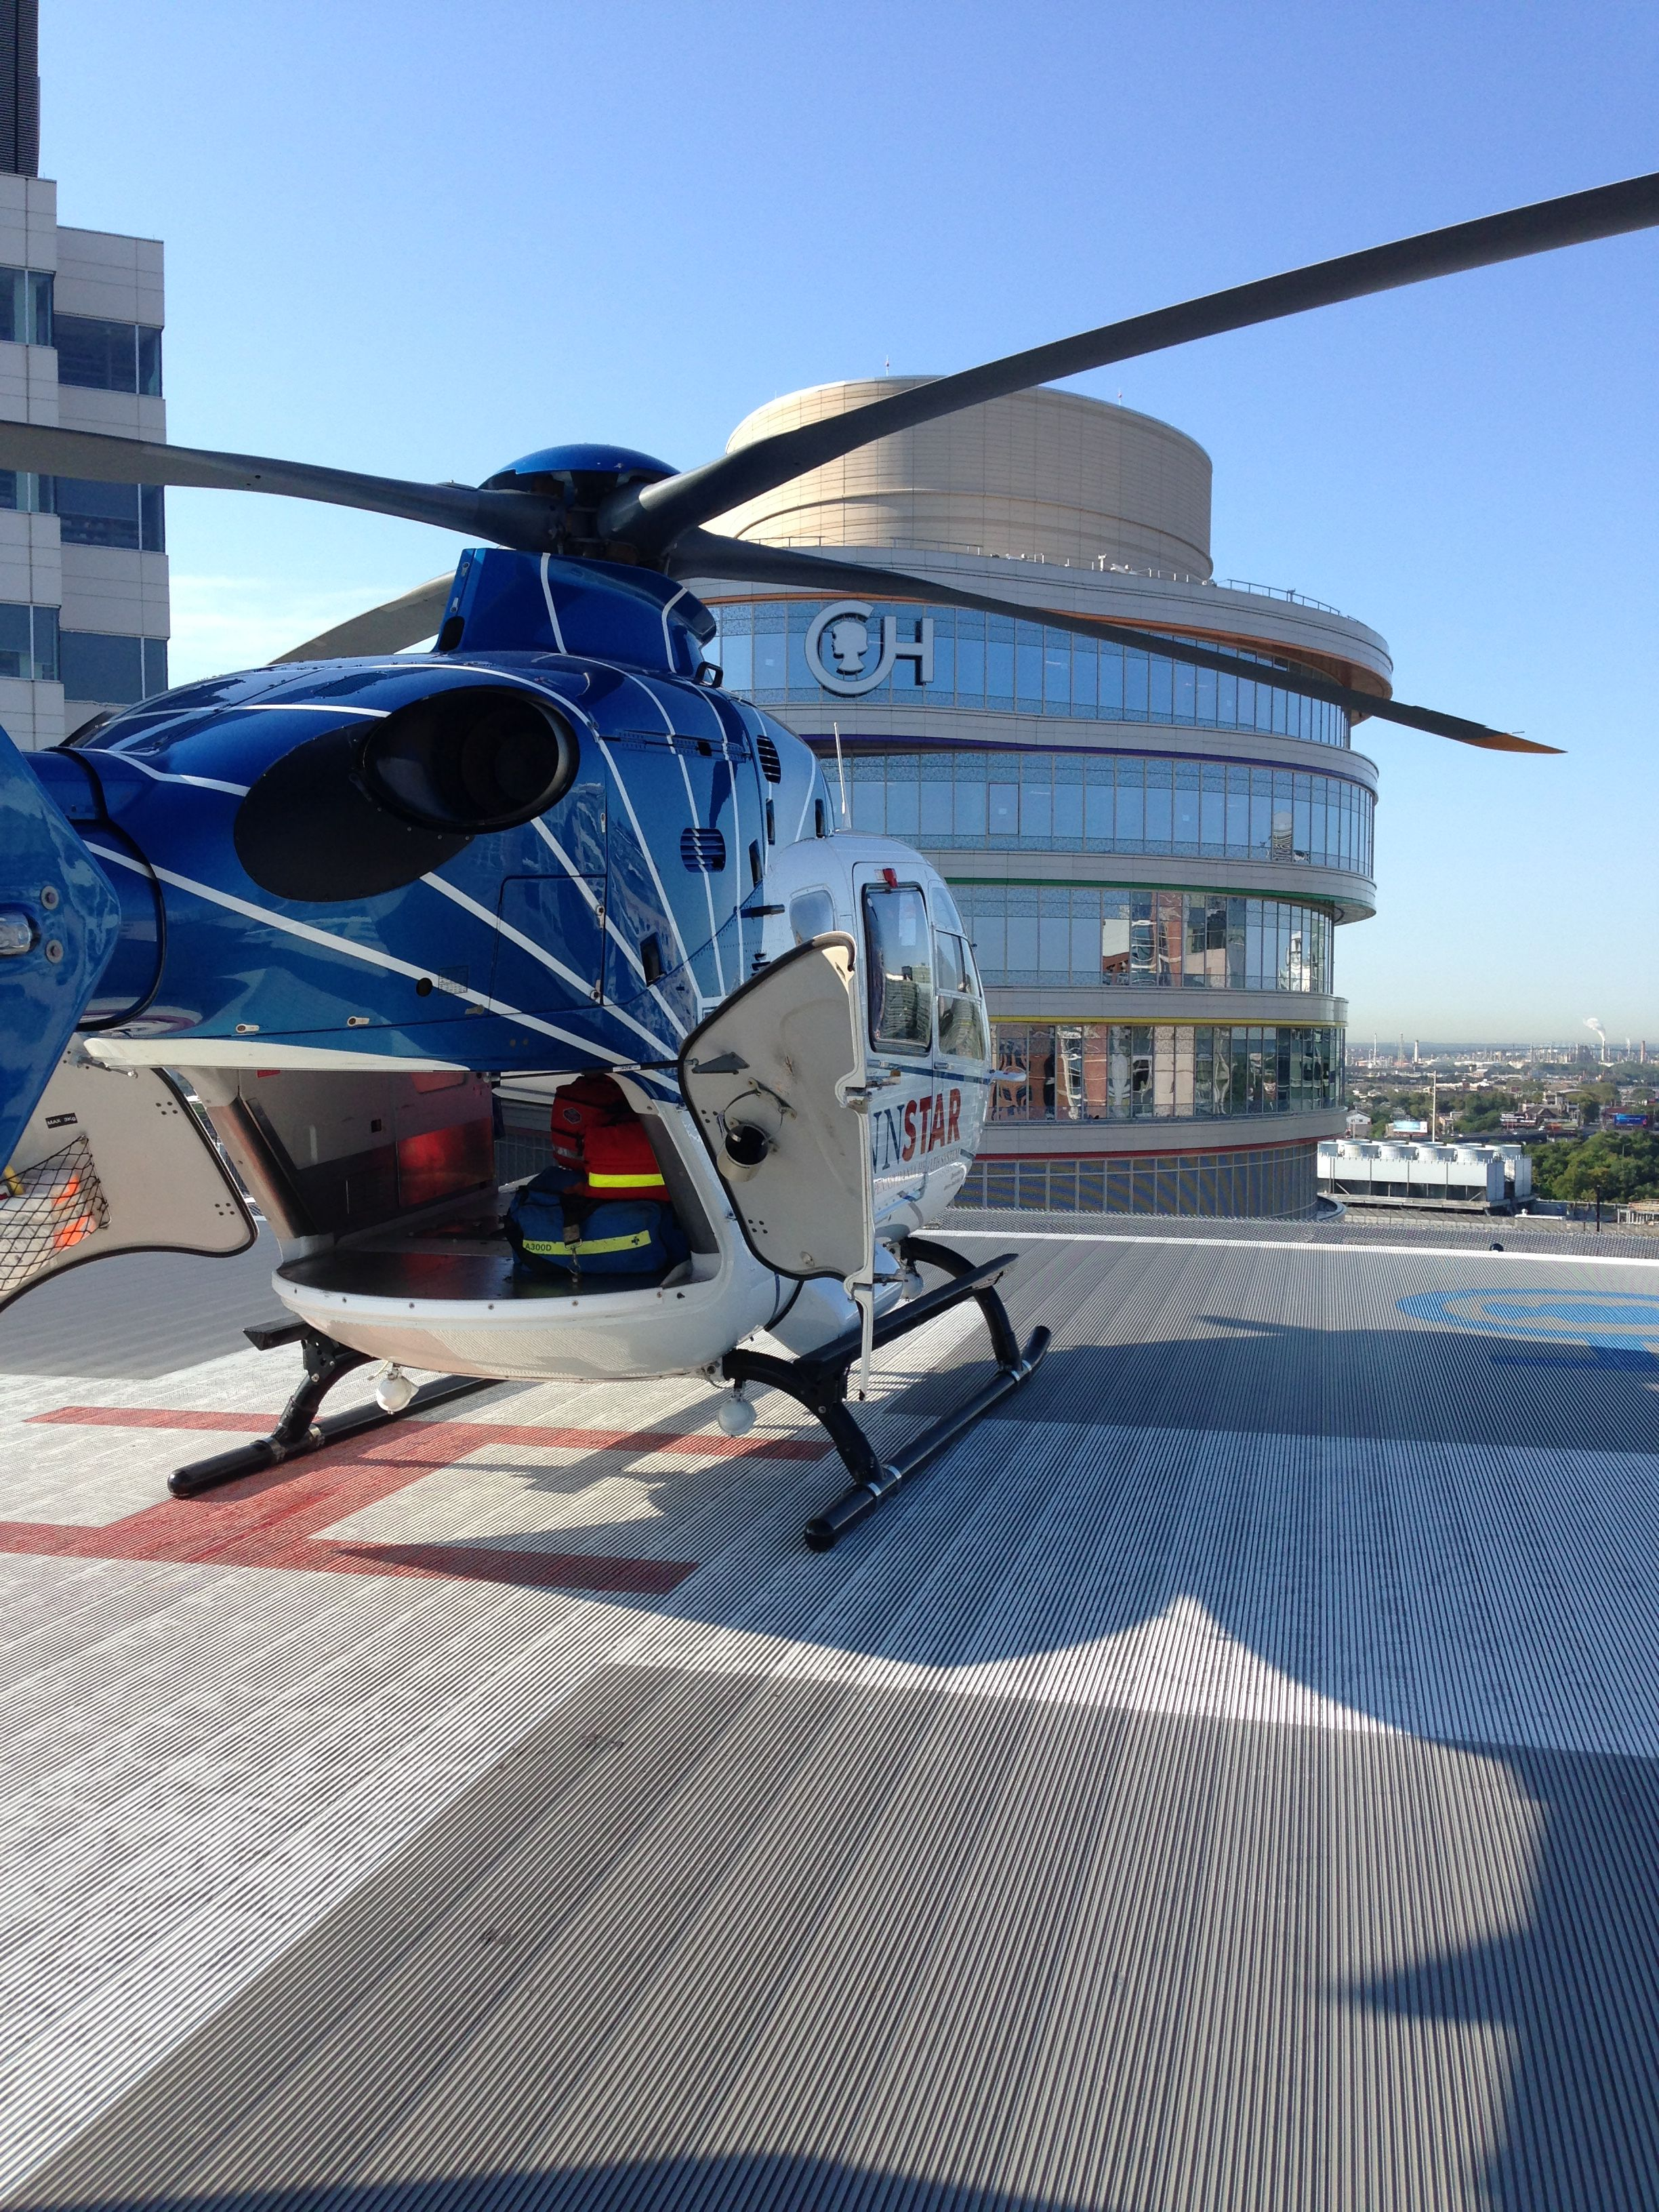 View from the helipad on top of Children's Hospital of